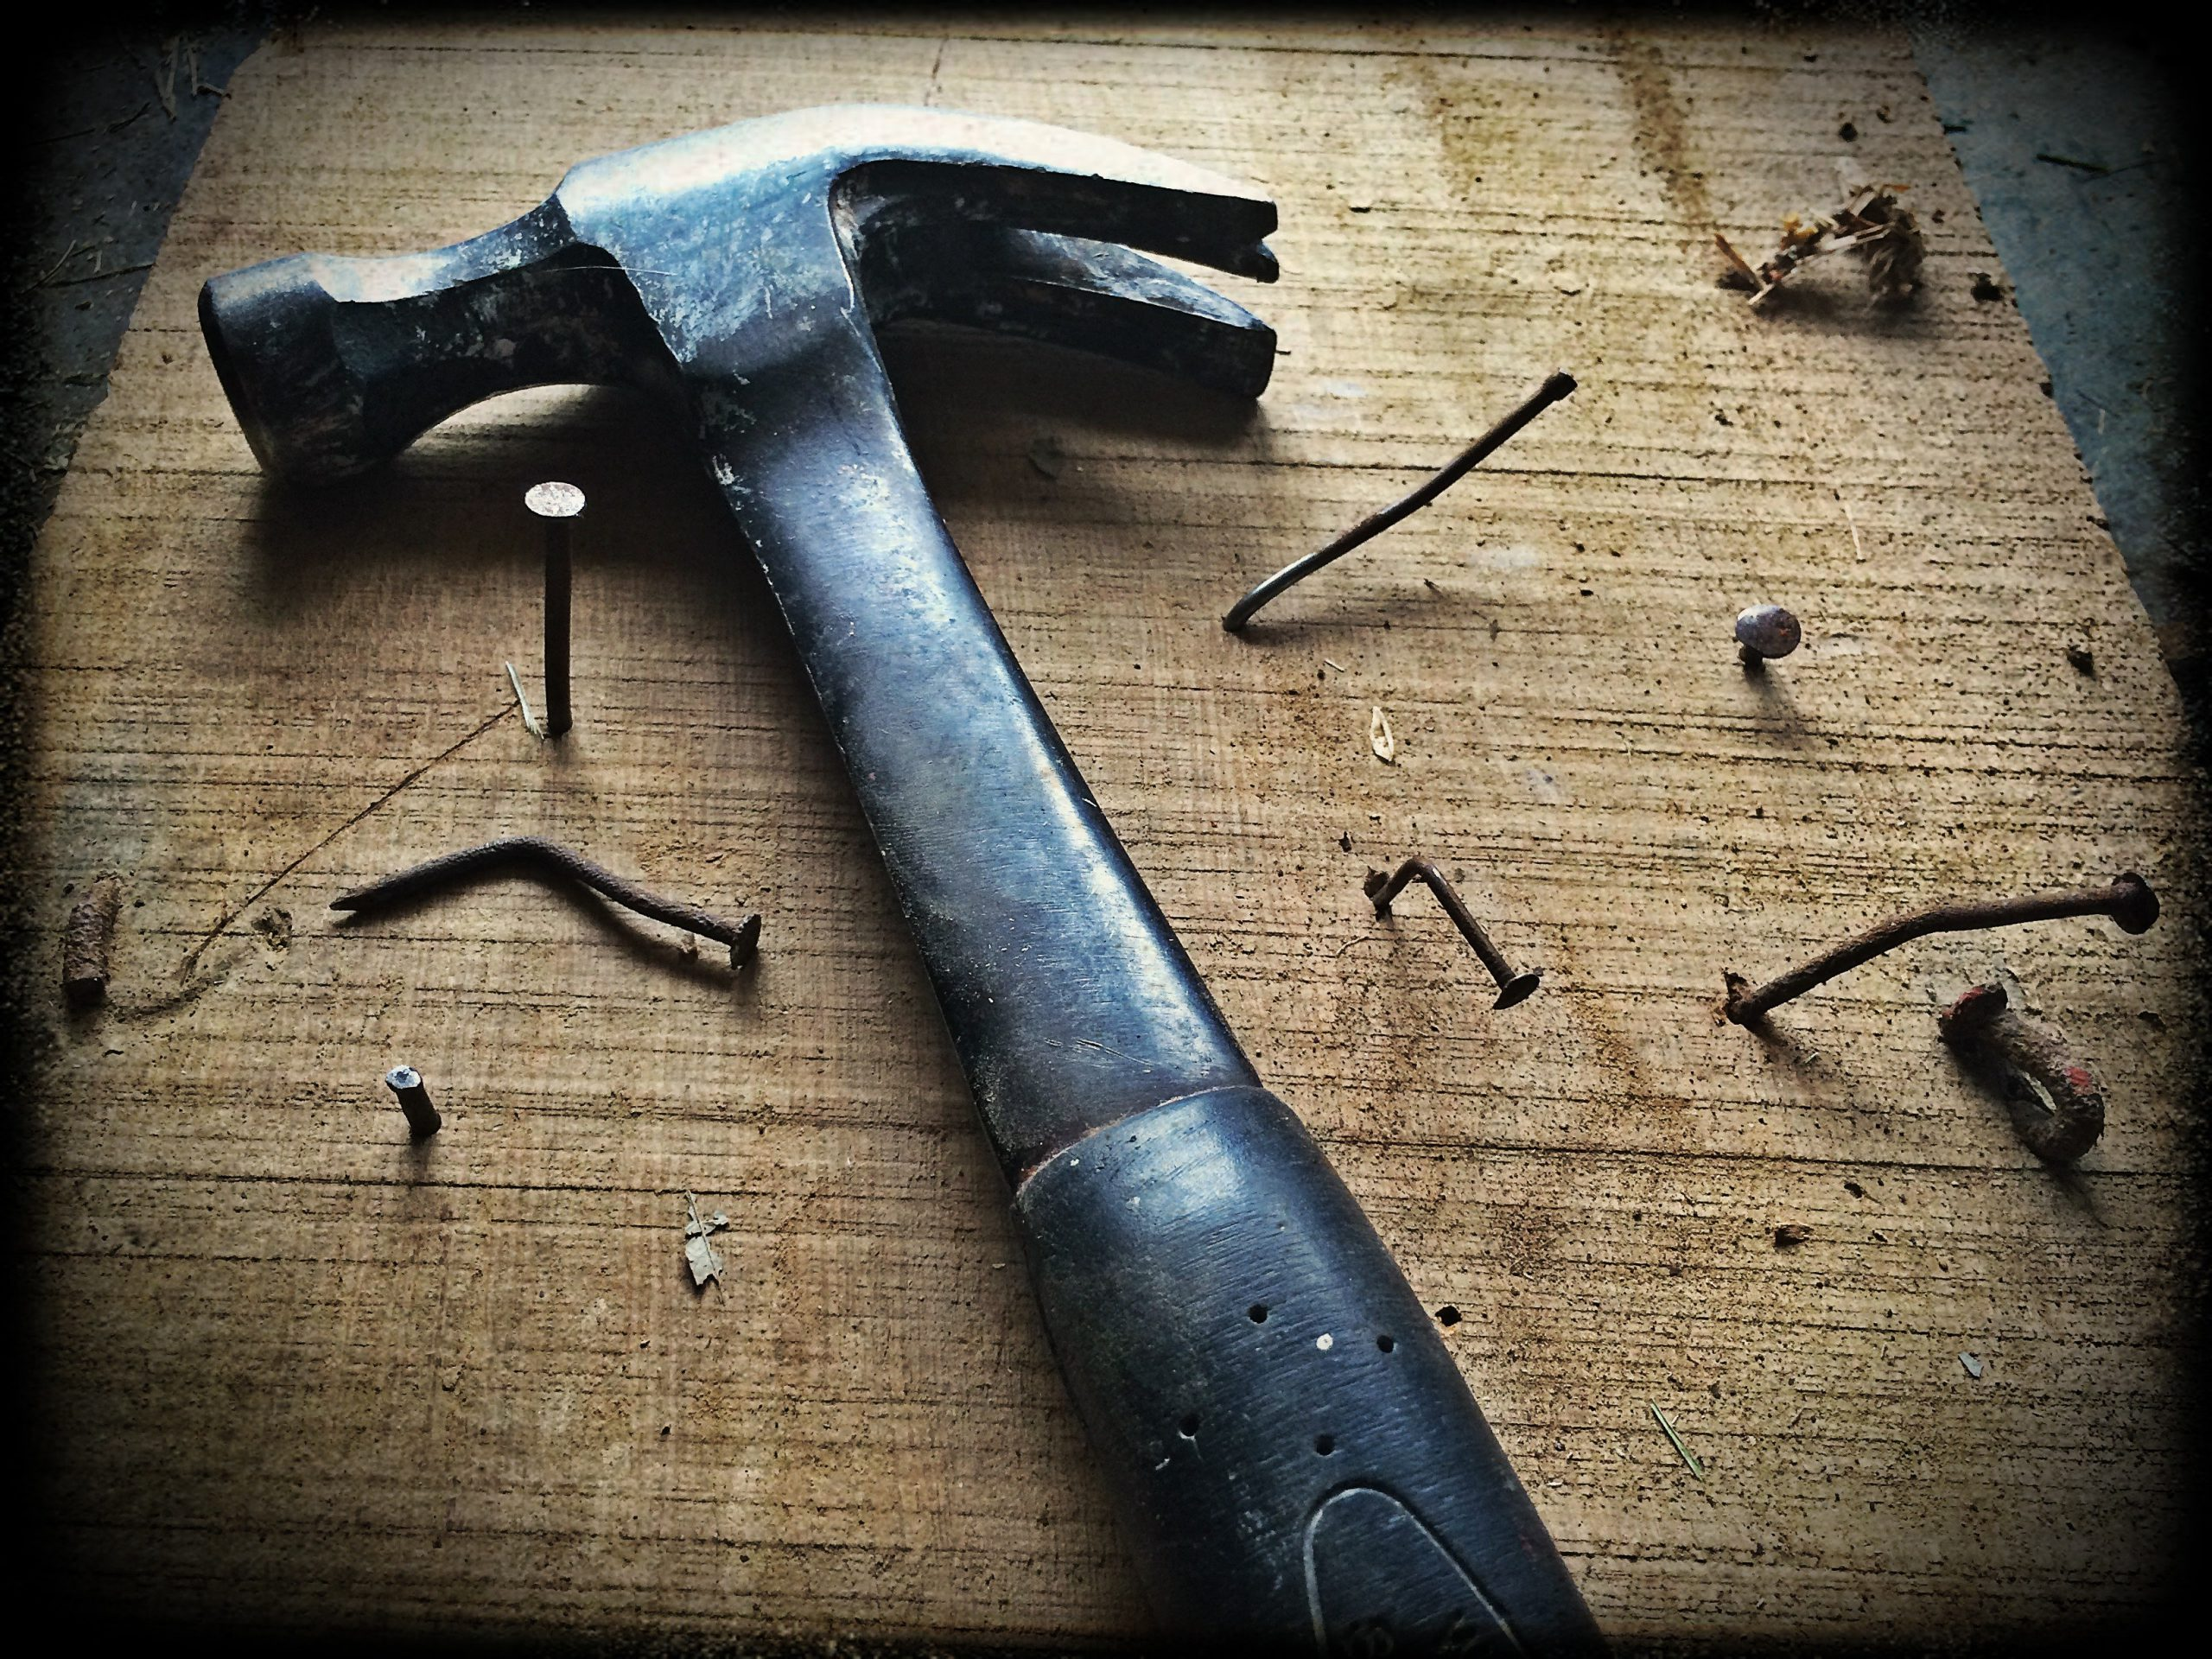 black-claw-hammer-on-brown-wooden-plank-209235